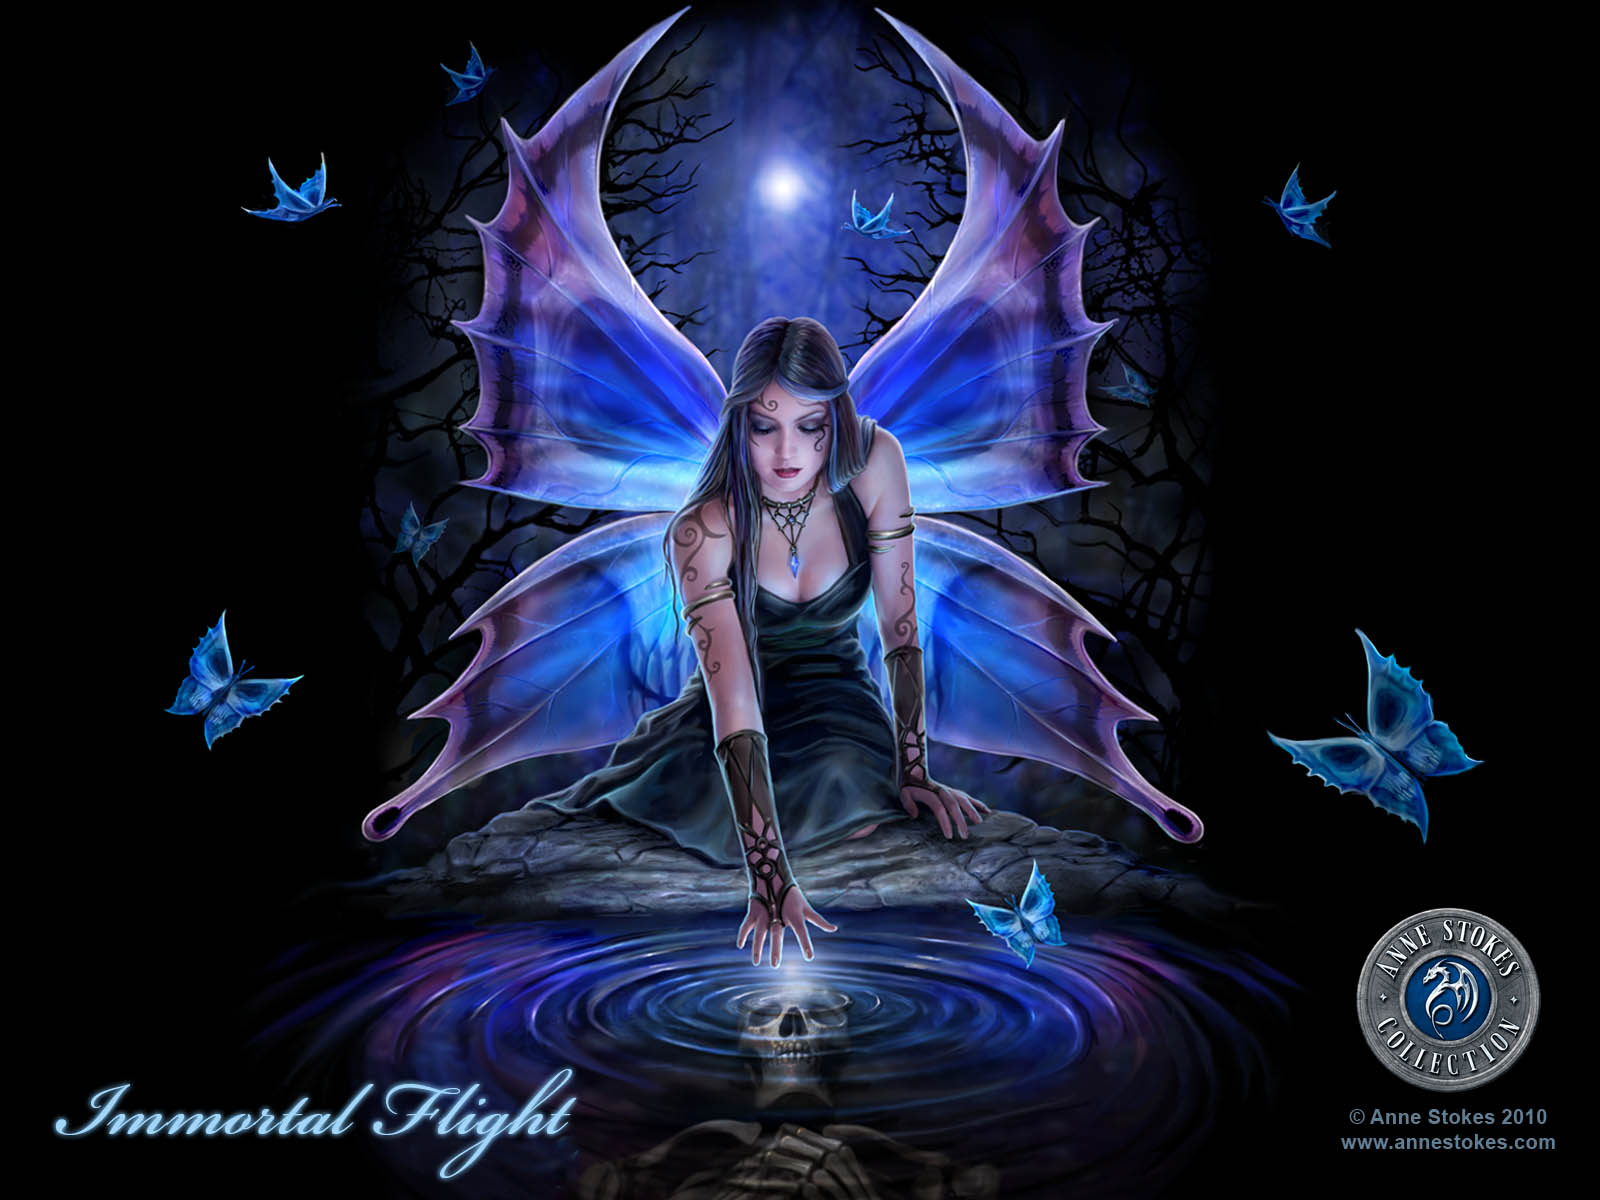 immortal_flight_1600x1200